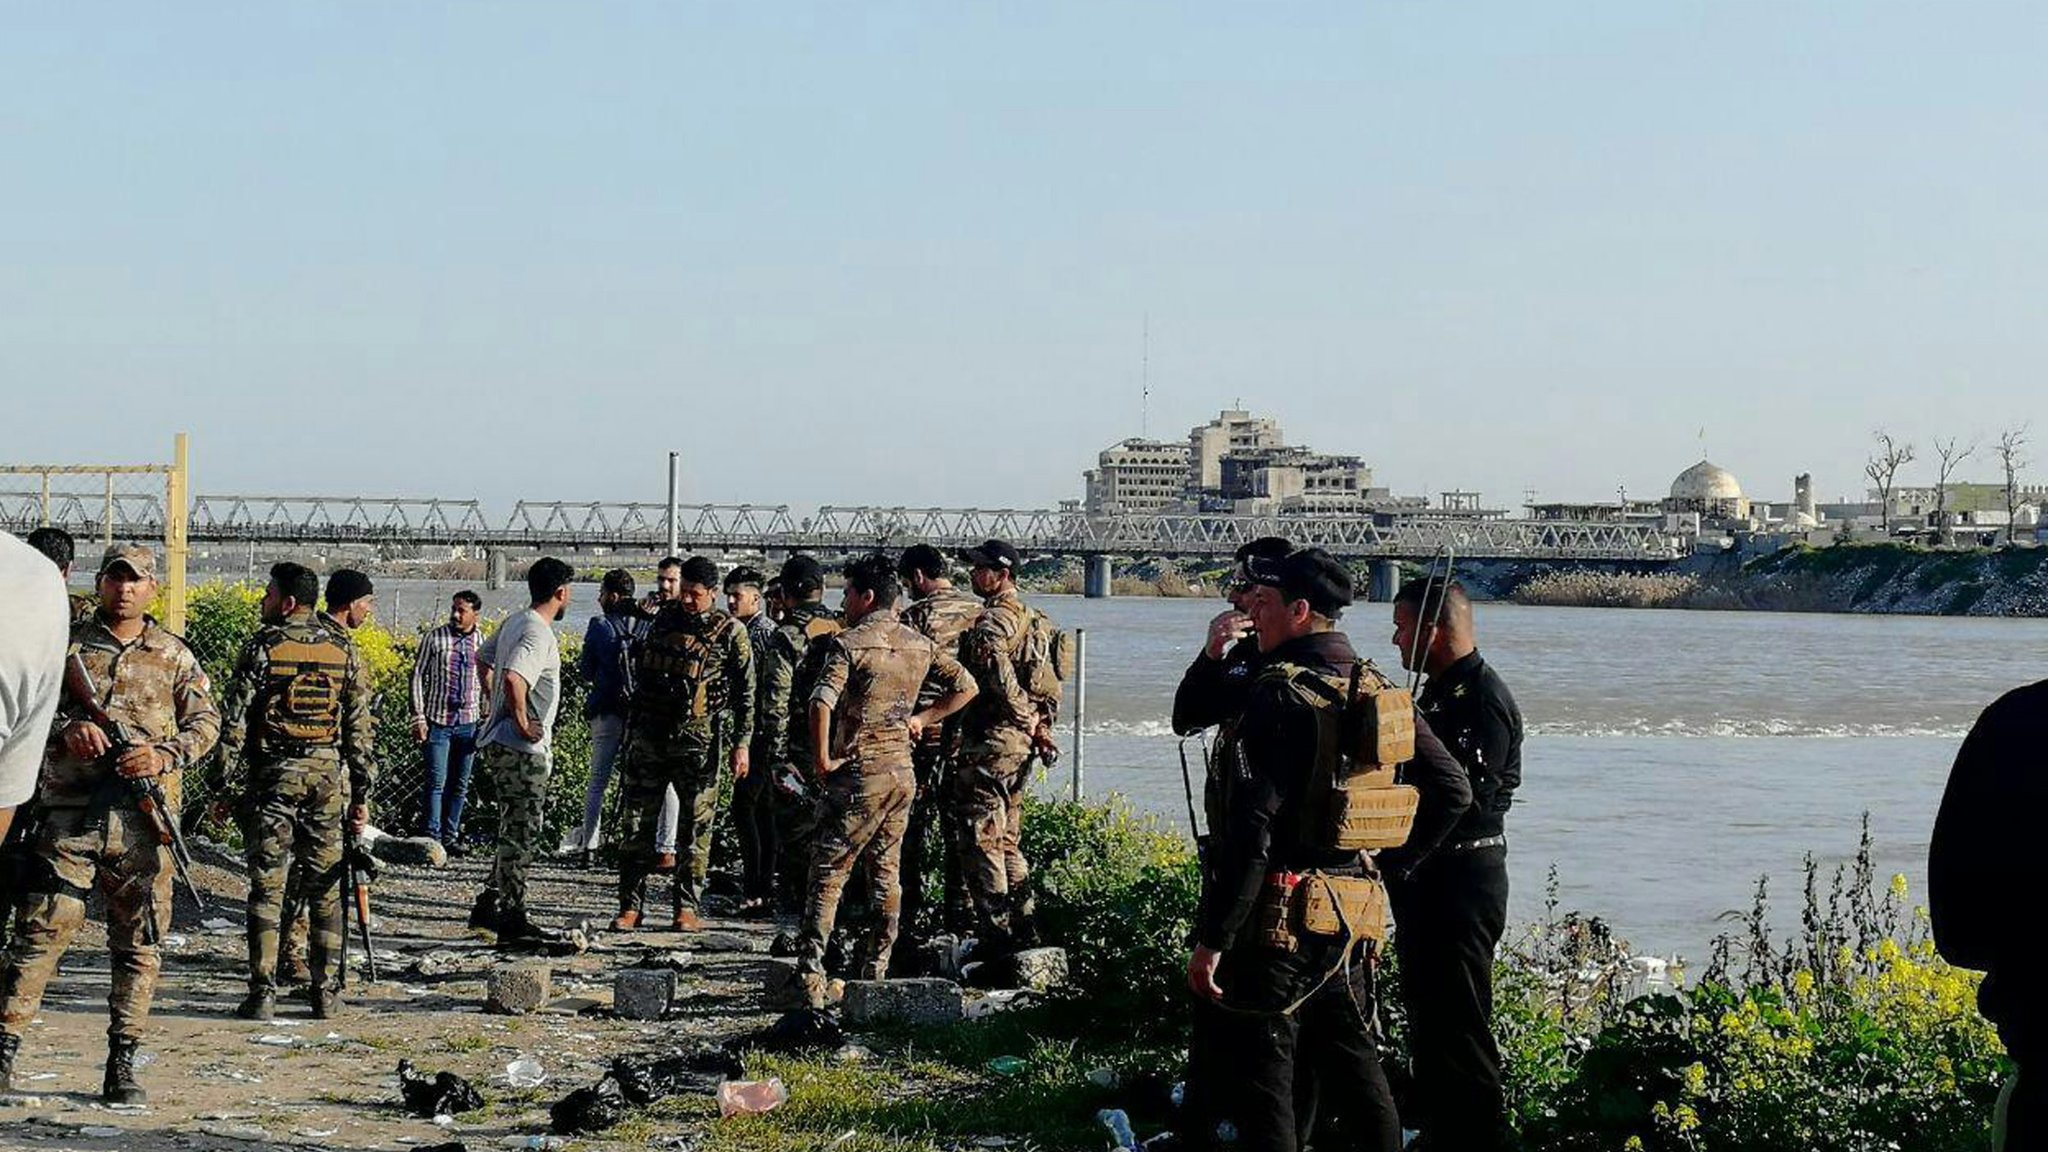 Iraq ferry sinking: 'More than 70 dead' in Tigris river